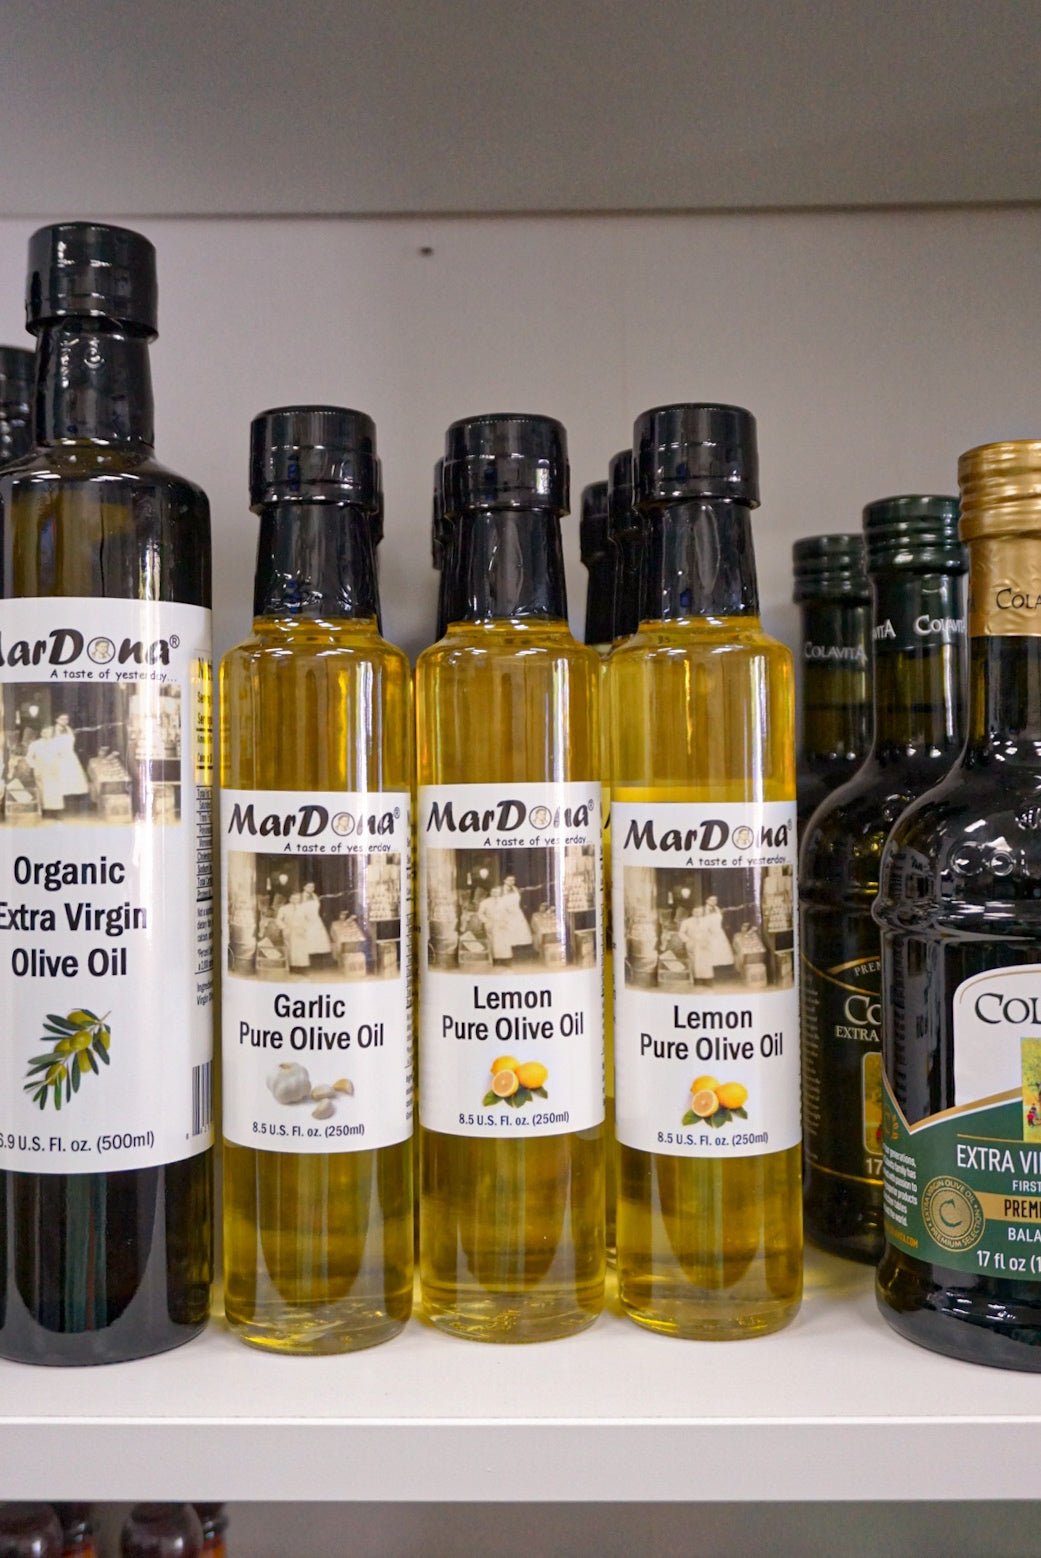 Mardona Lemon Olive Oil - New Canaan